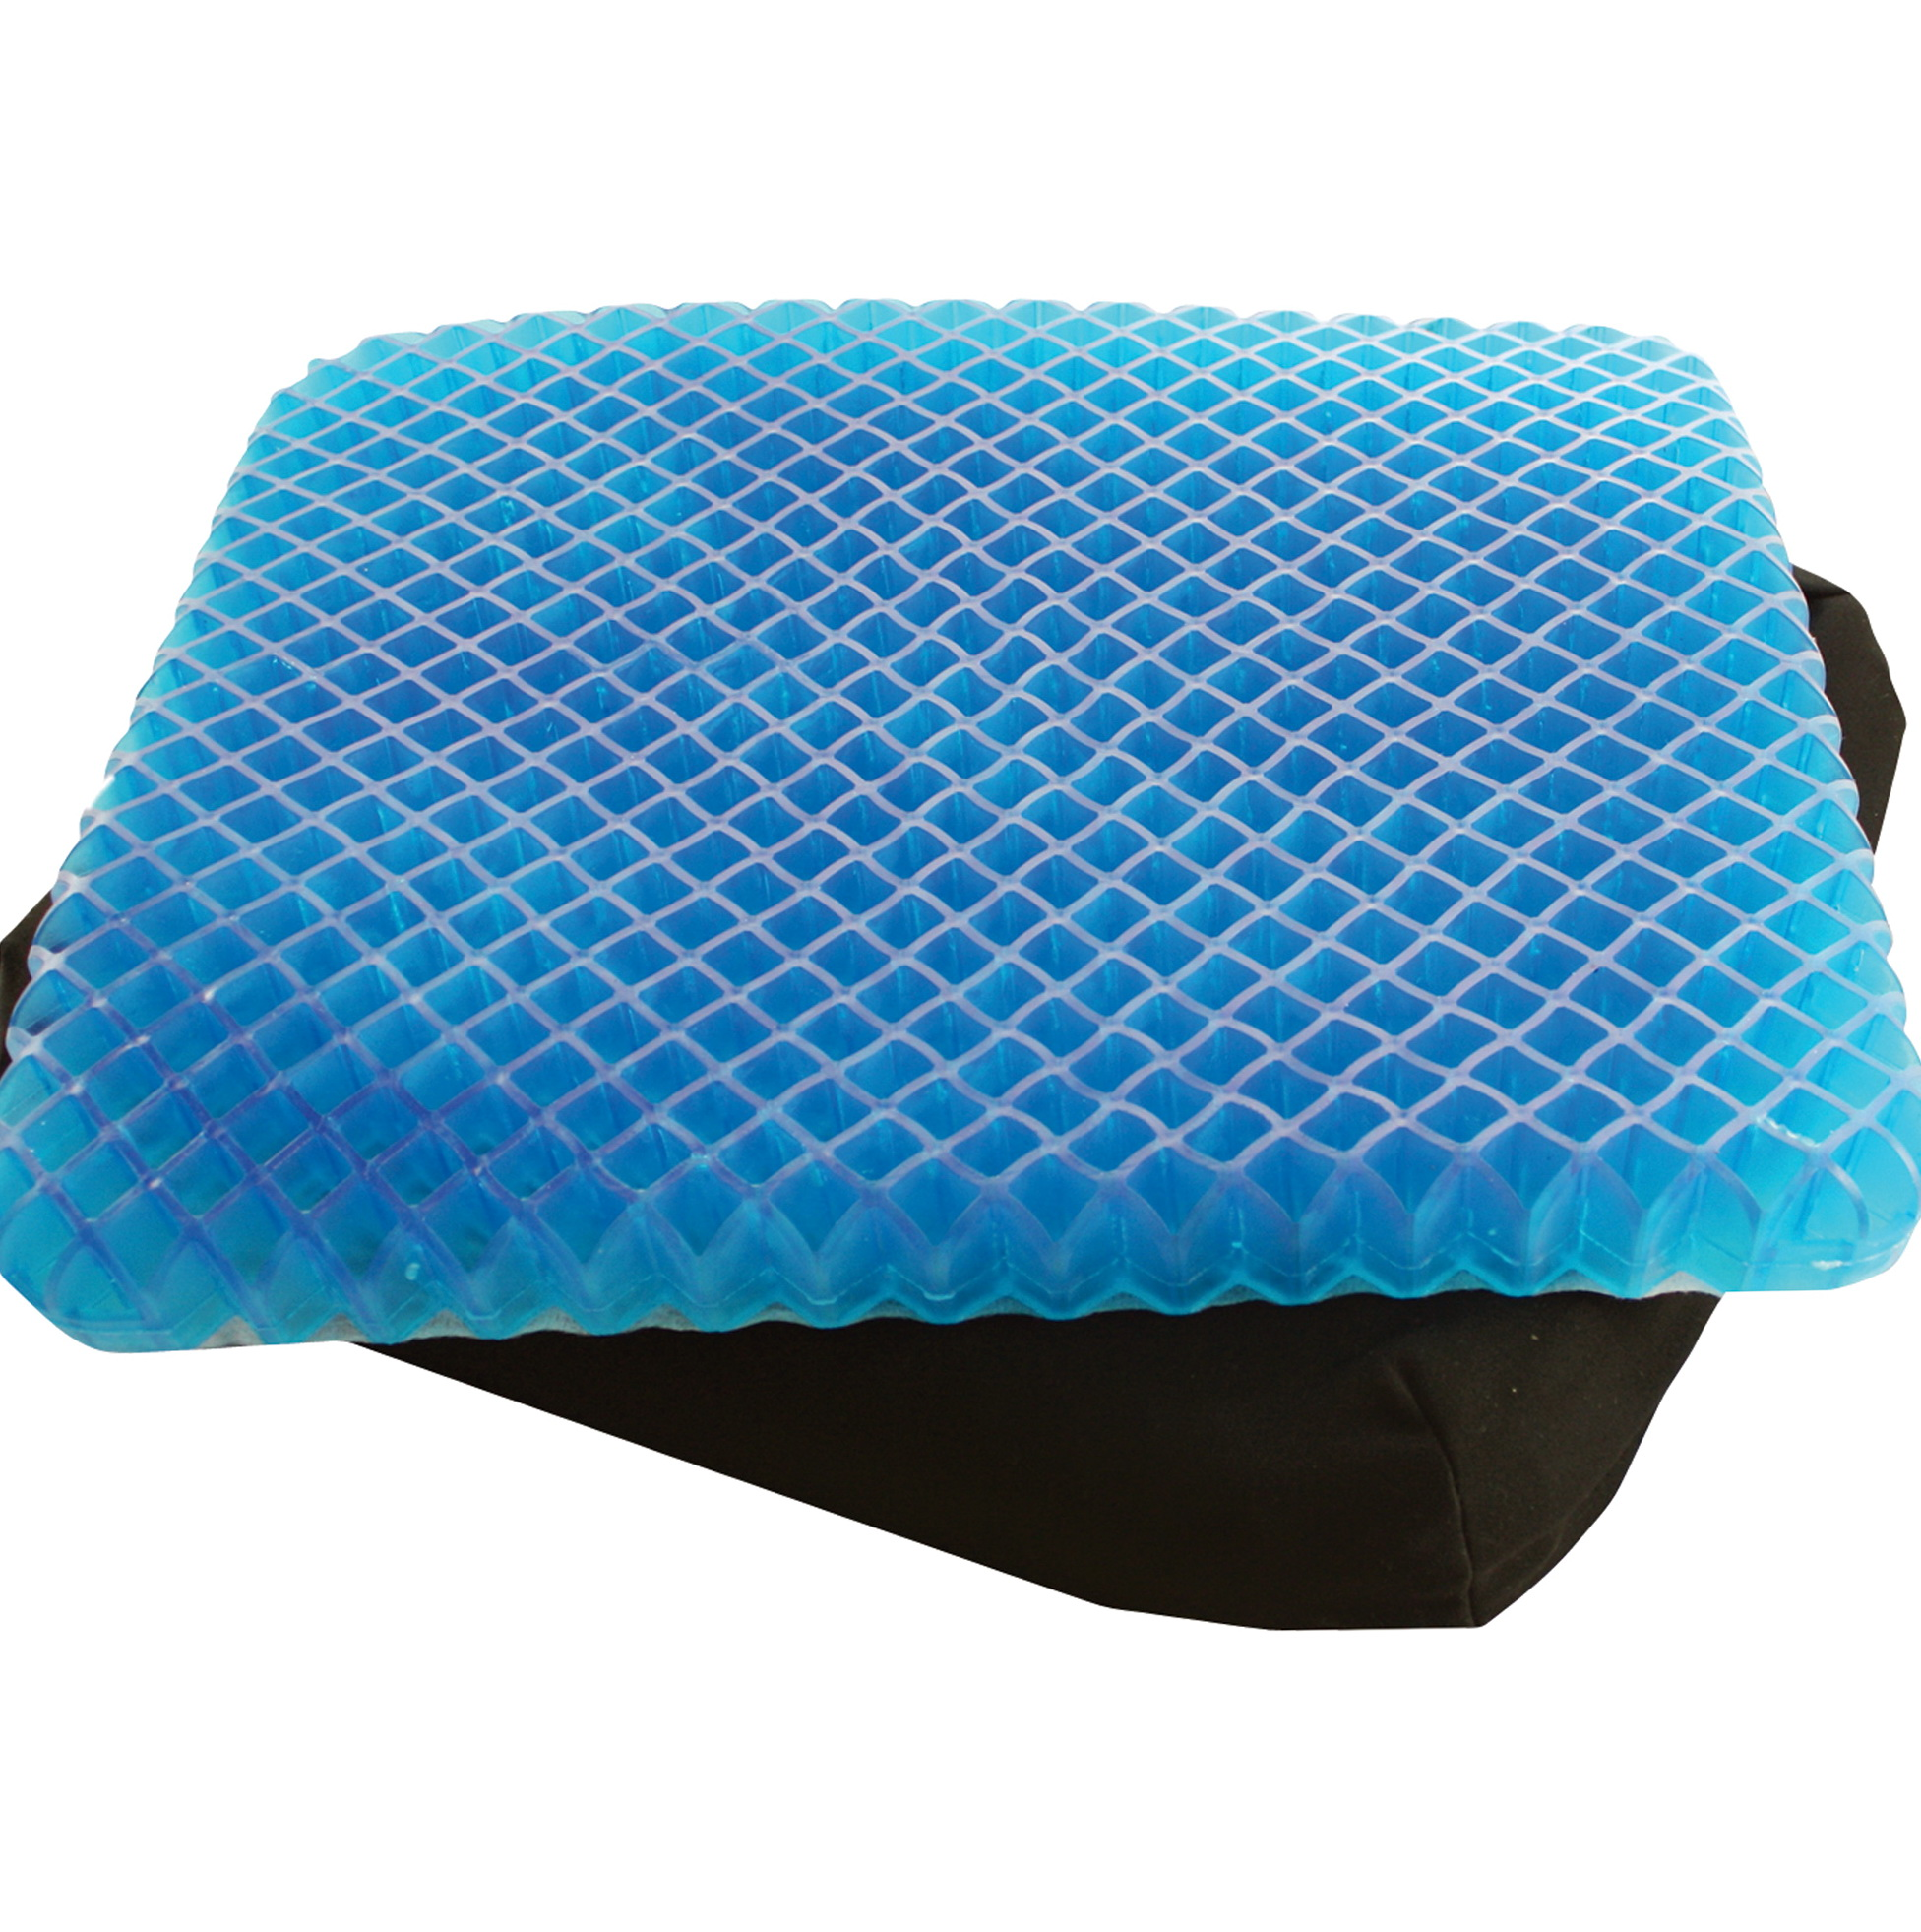 Gel Seat Cushions For Office Chairs Home Design Ideas